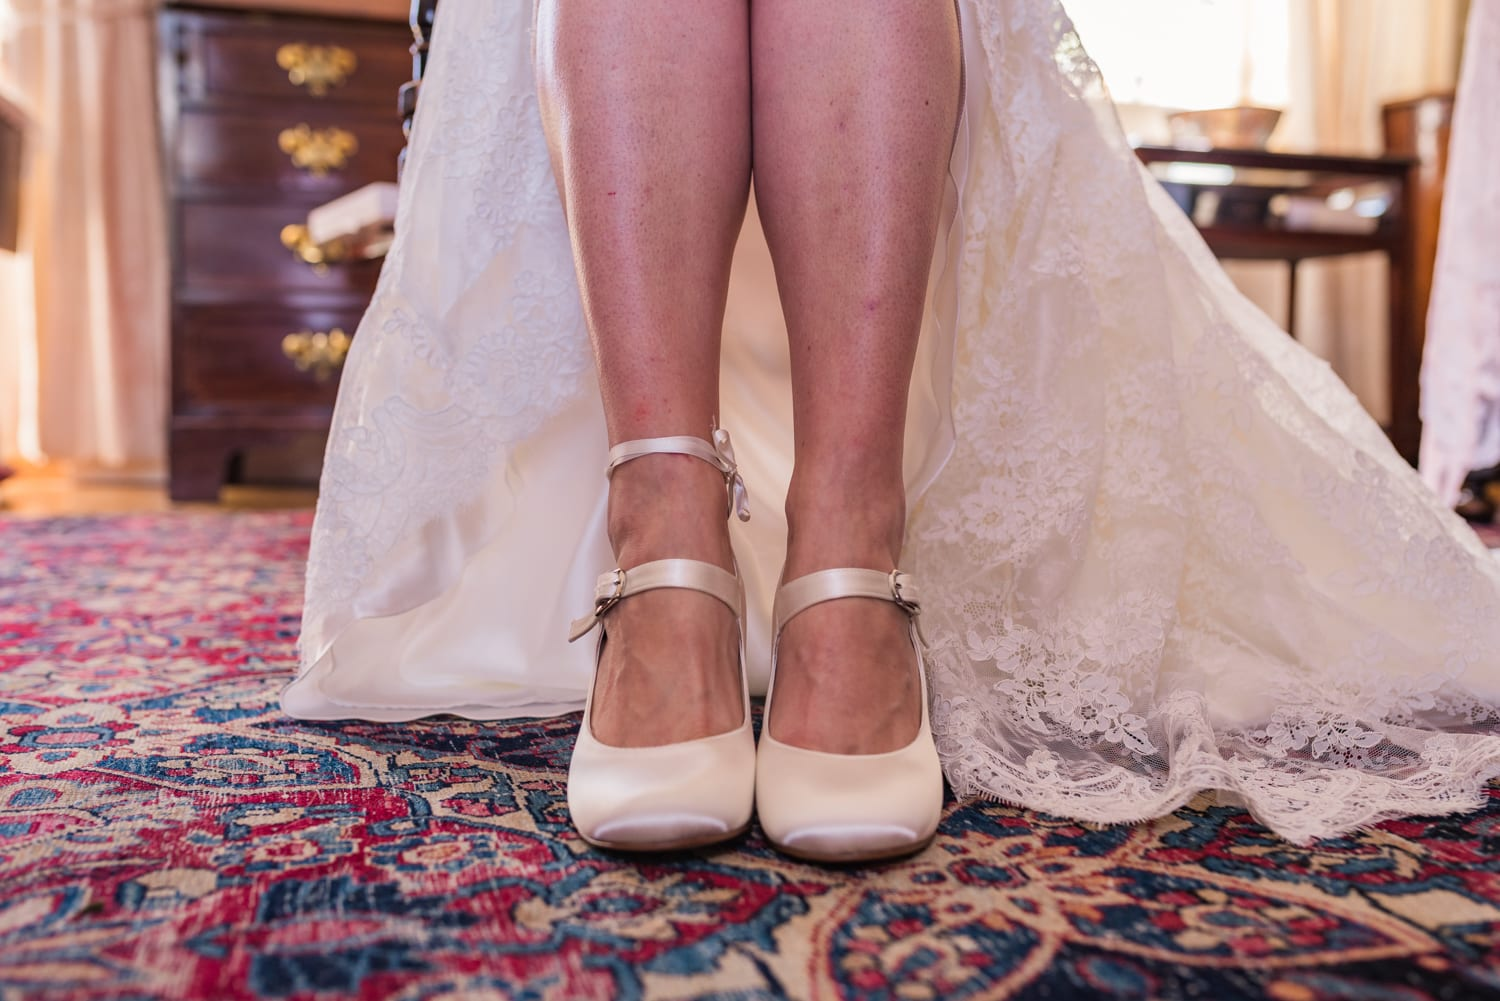 023-dorset-wedding-shoes.jpg